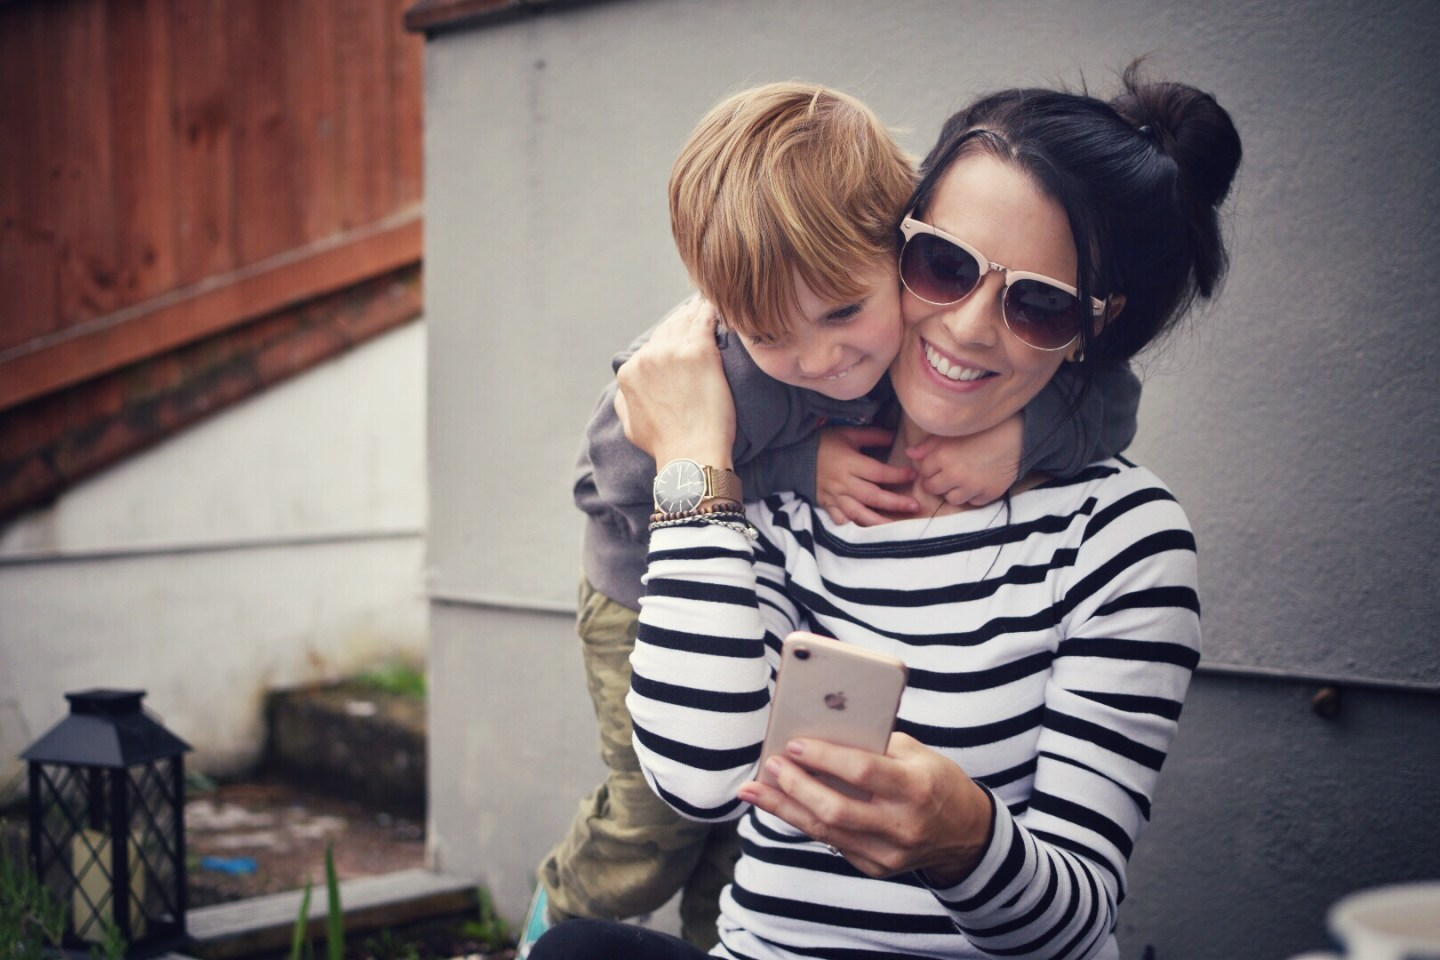 Why online Dating And Single Parents Are The Perfect Couple